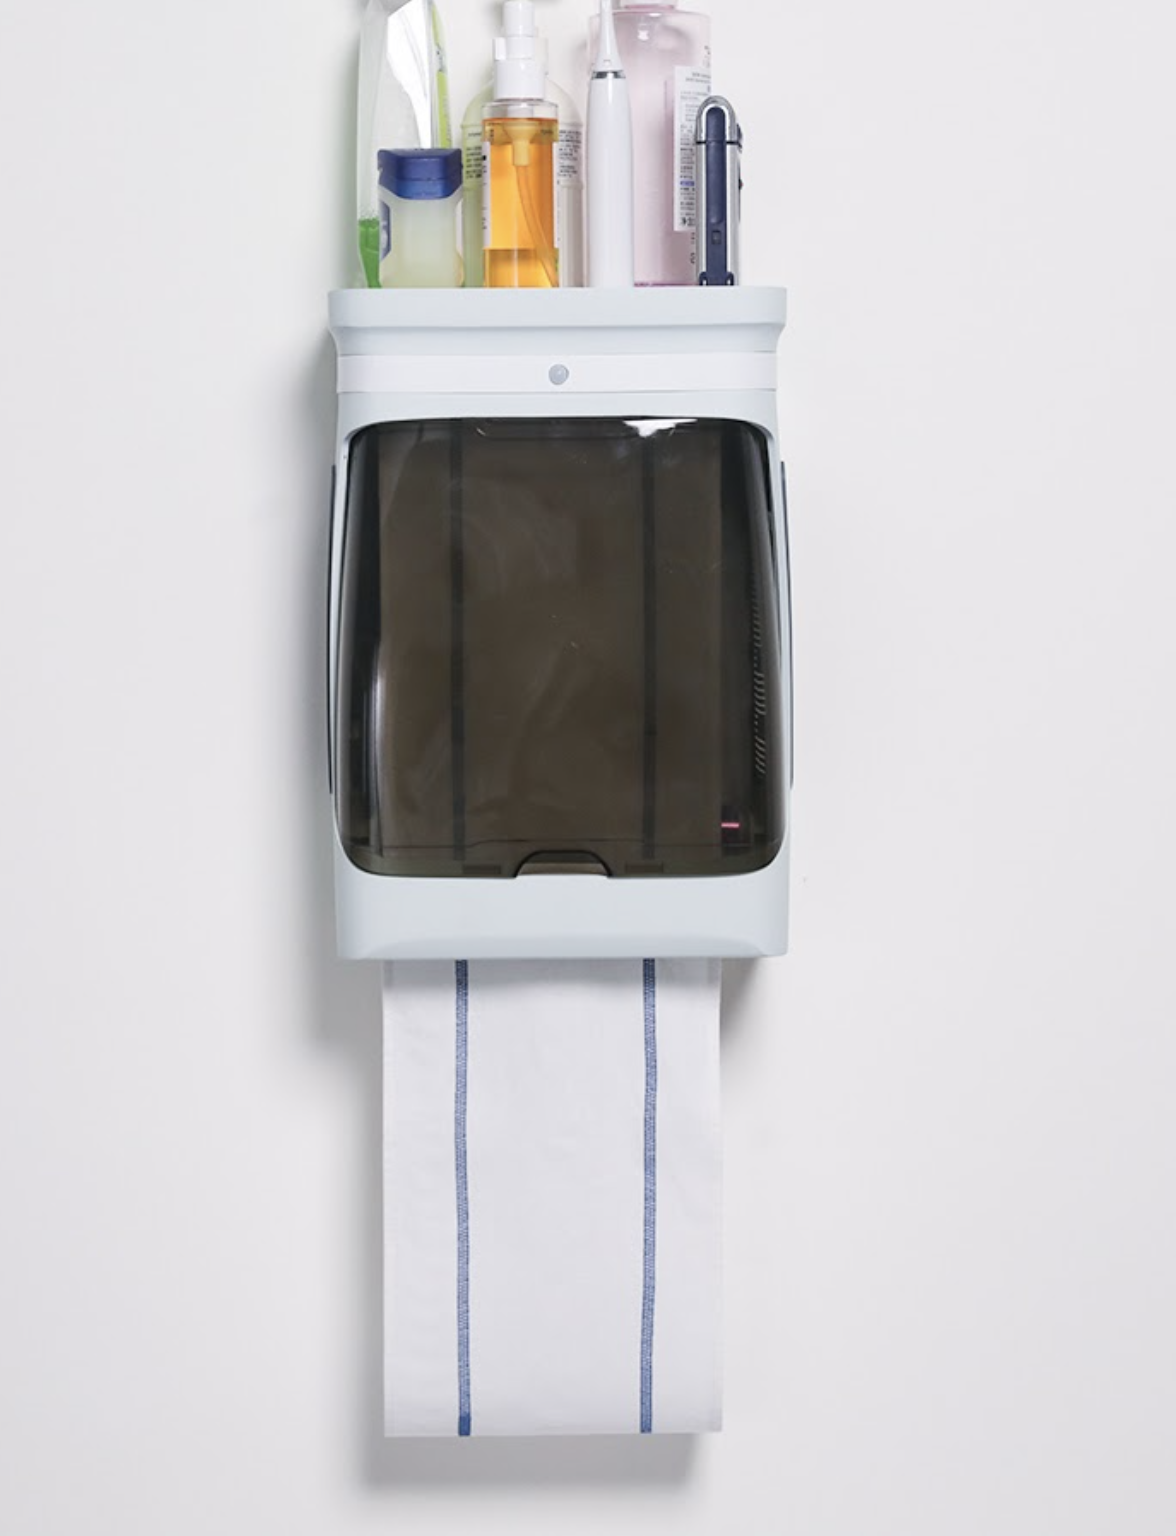 Introducing Cycloth - a Hand Towel Dispenser that Keeps Hands Dried and Sterilised